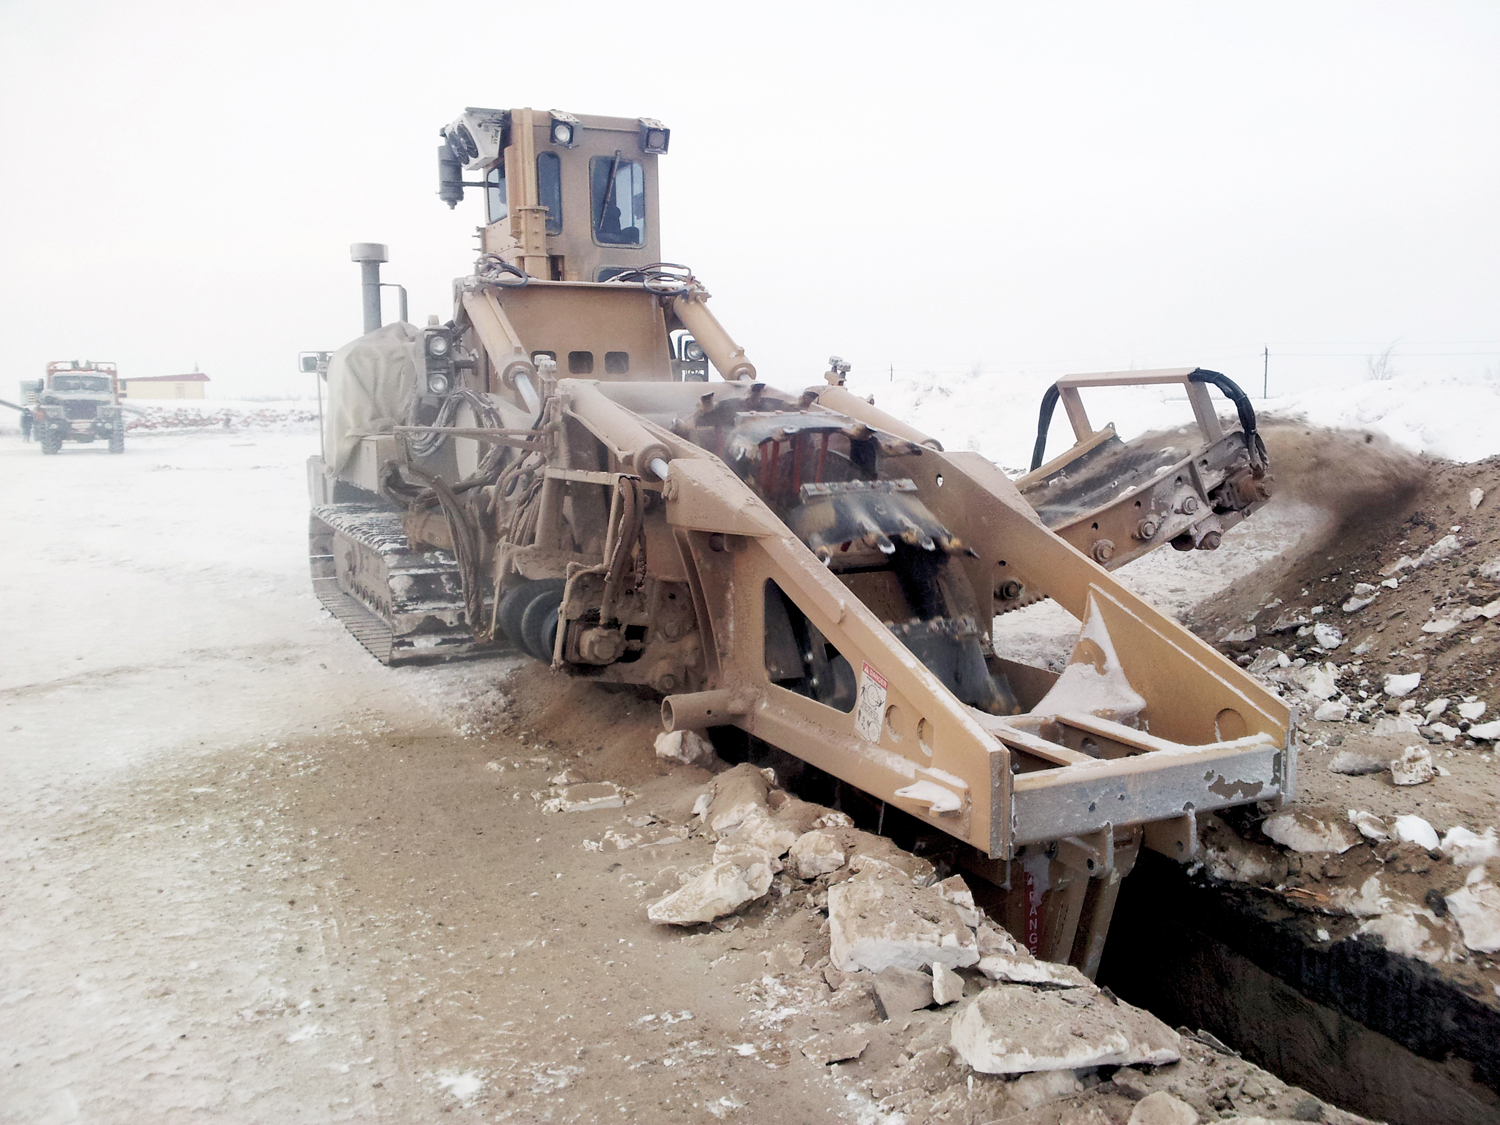 Tesmec 1075 Bucket Wheel Trencher for dirt and rocky soils excavation